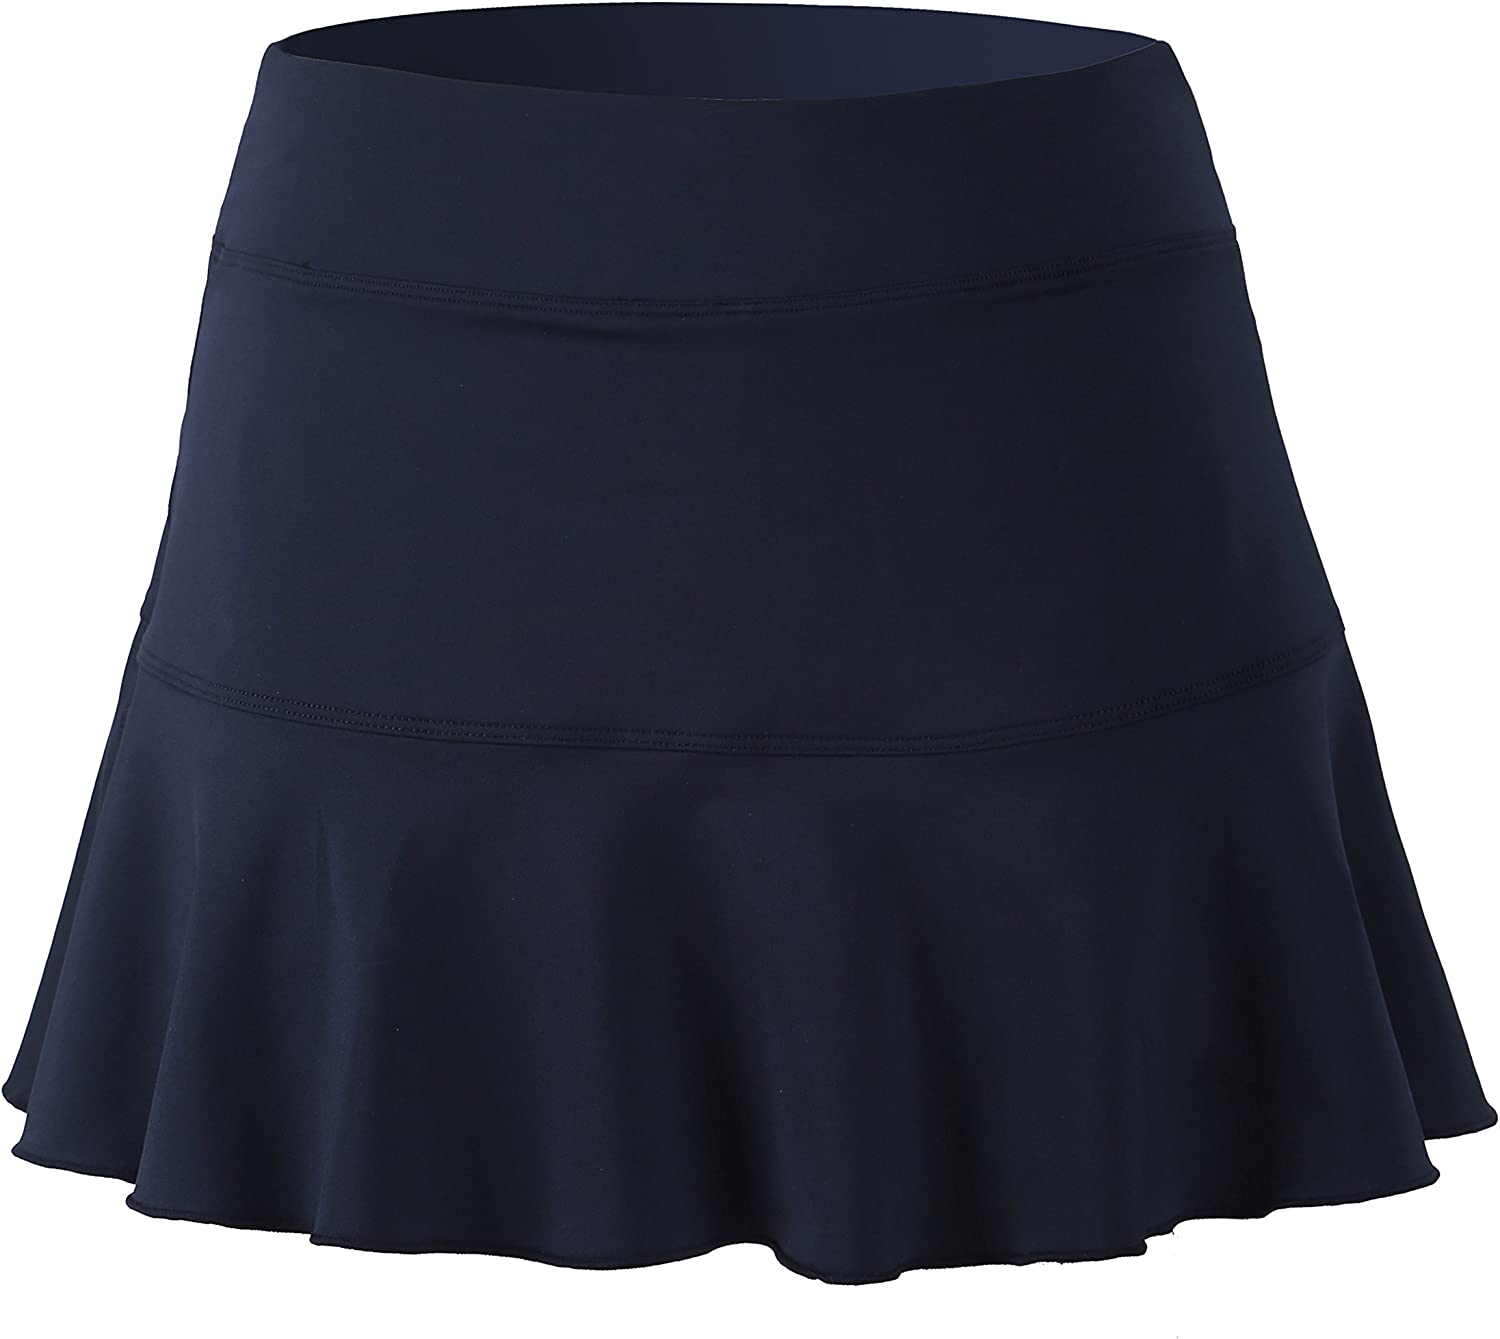 1 by 1 Tennis Skirt Womens Pleated Elastic Quick-Drying Running Tennis Skort Sport Skirt with Shorts